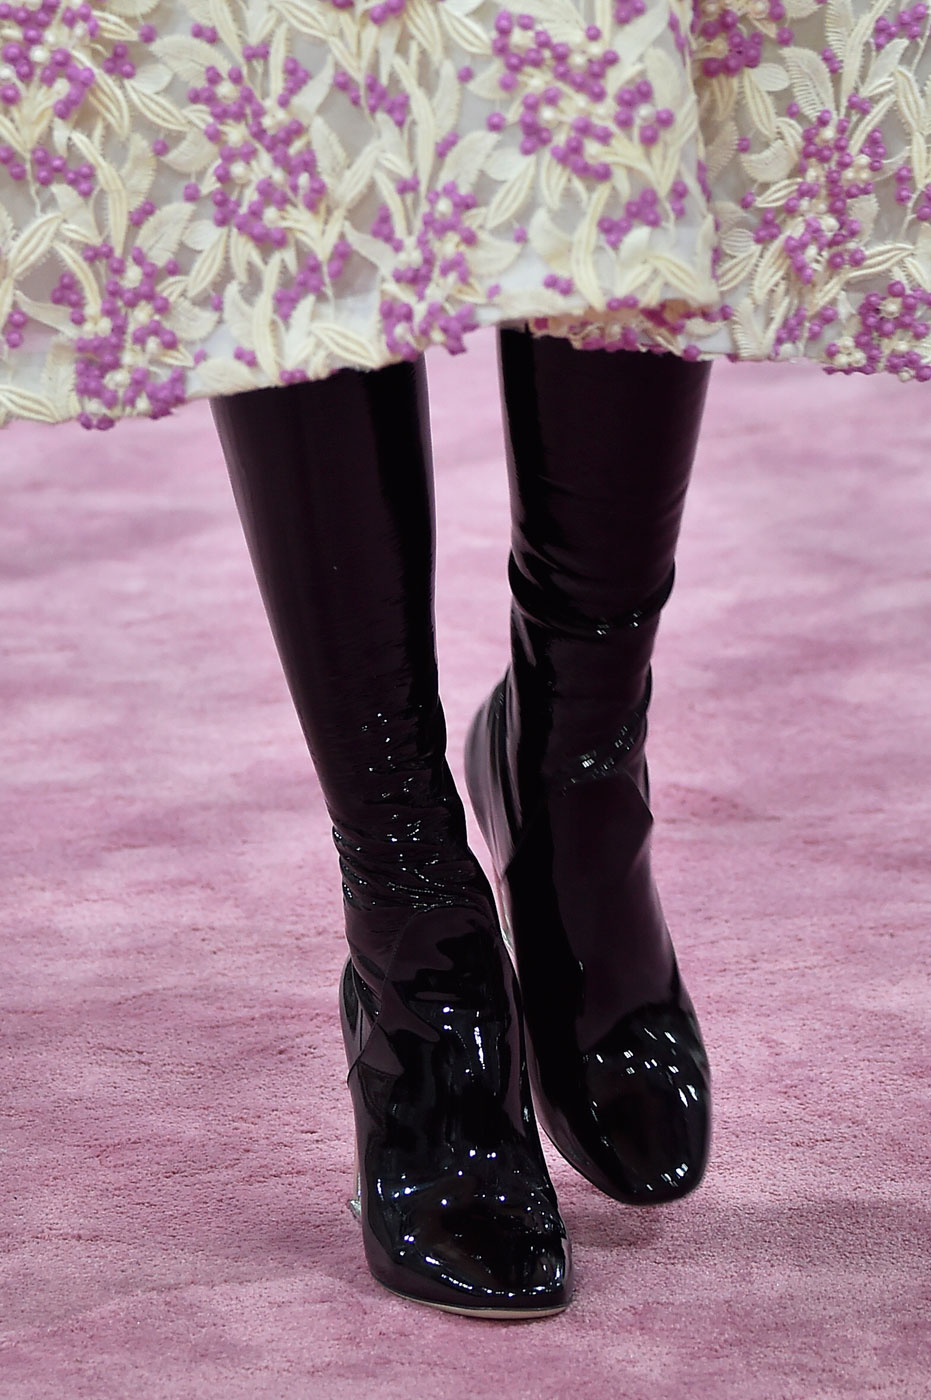 Christian-Dior-fashion-runway-show-close-ups-haute-couture-paris-spring-summer-2015-the-impression-058